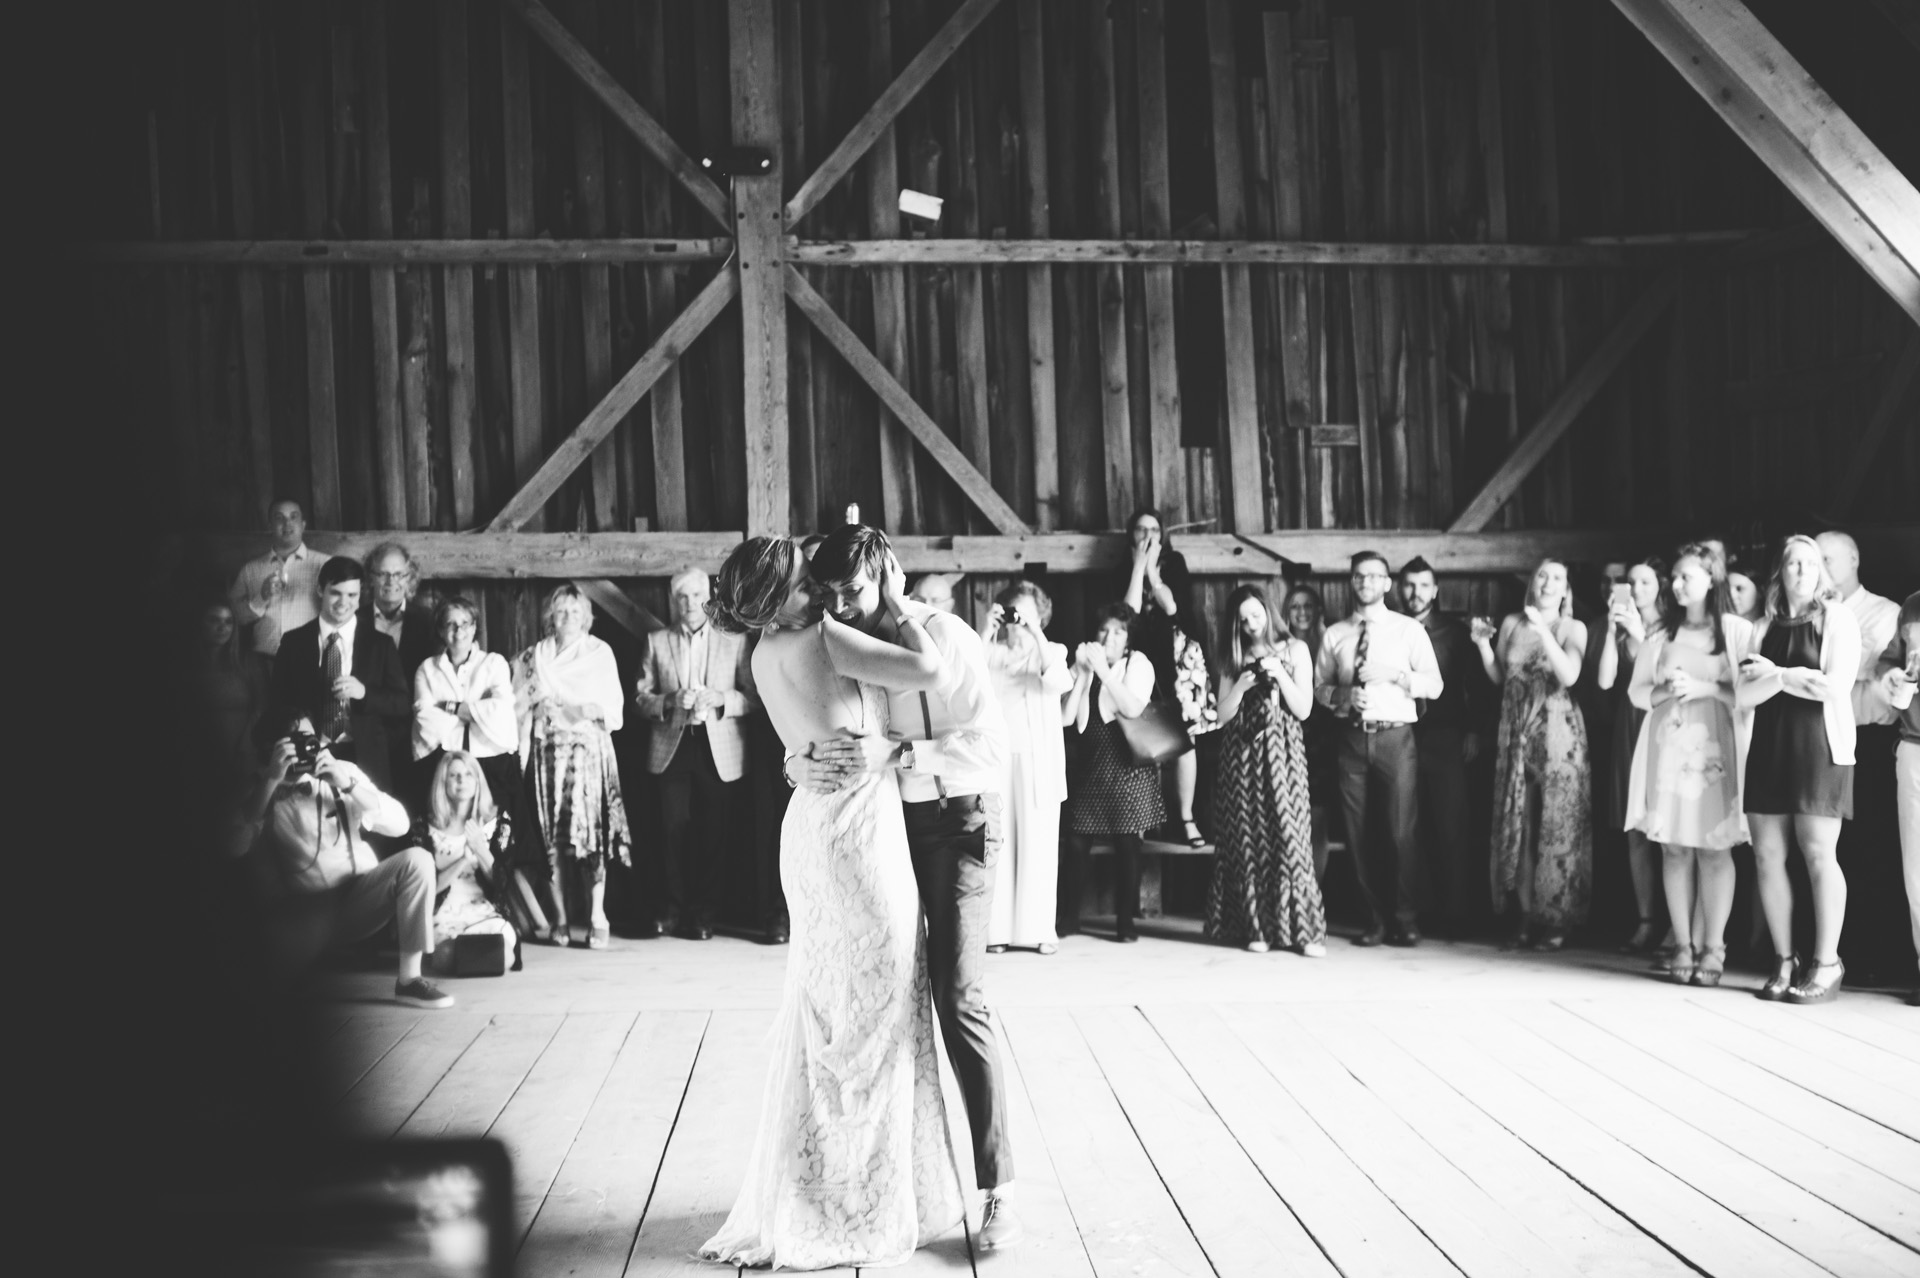 broadturn-farm-wedding-80